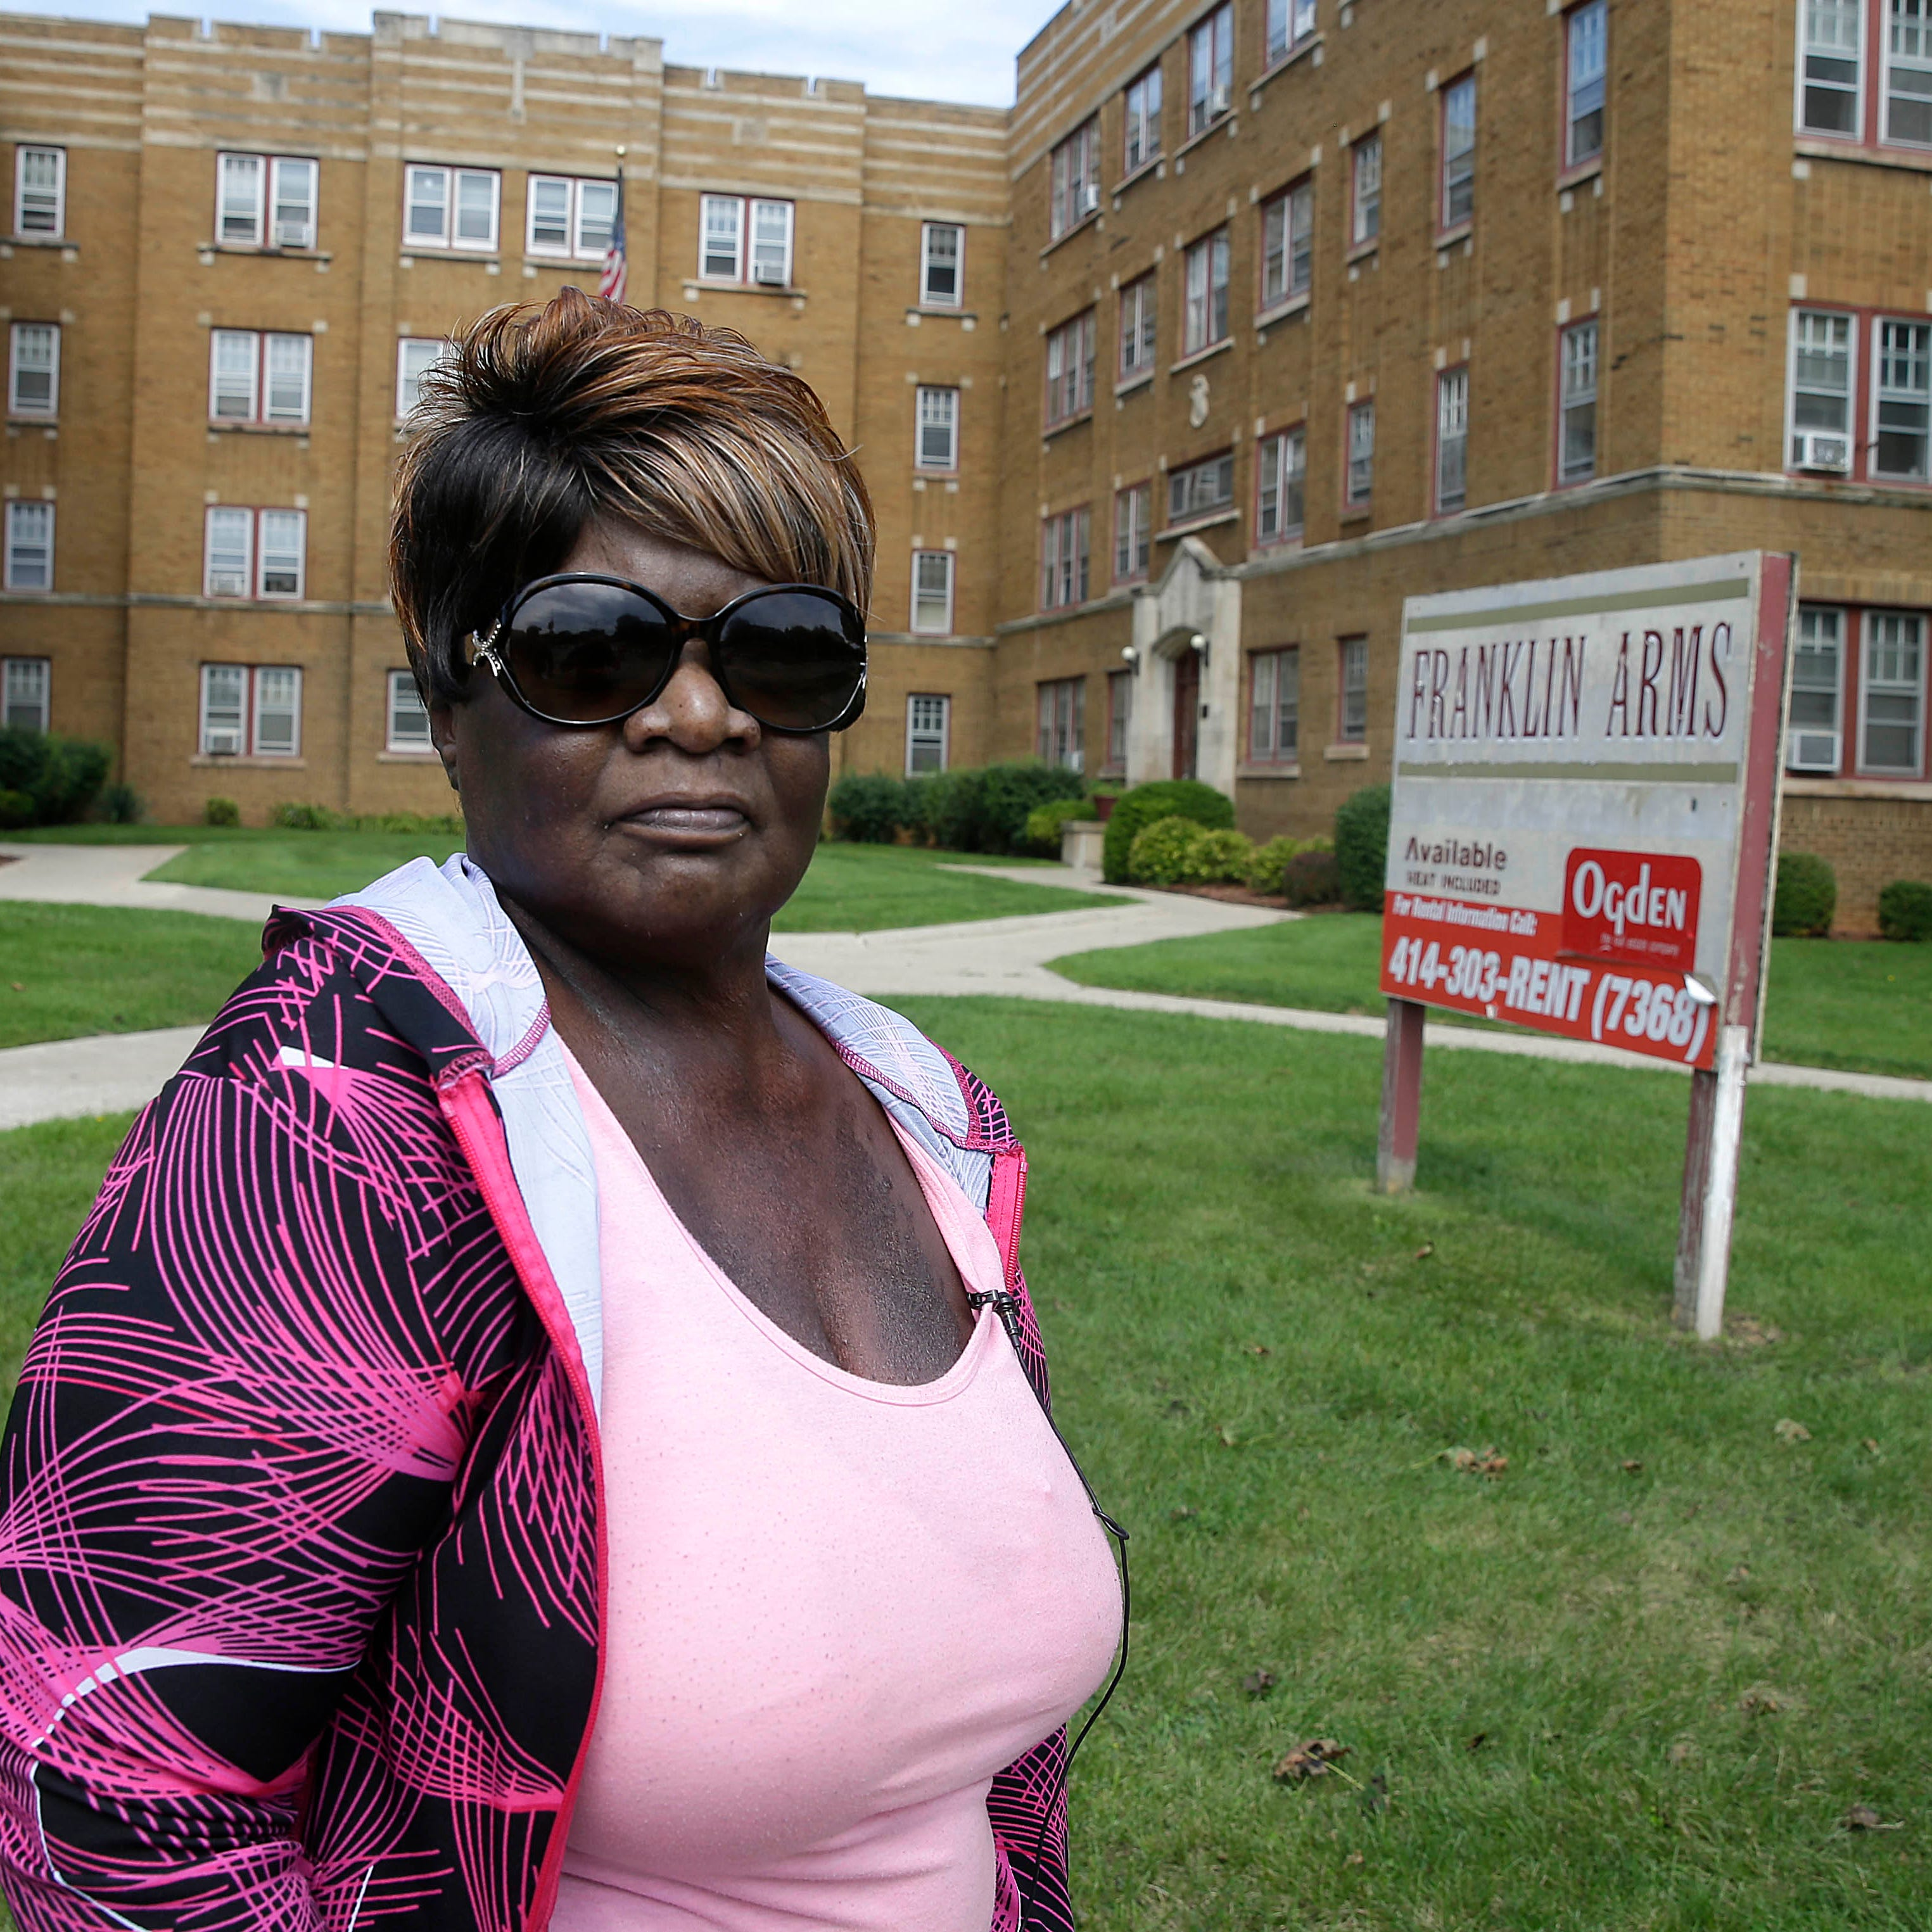 Eviction ends with tenant losing everything including medications, clothing and furniture